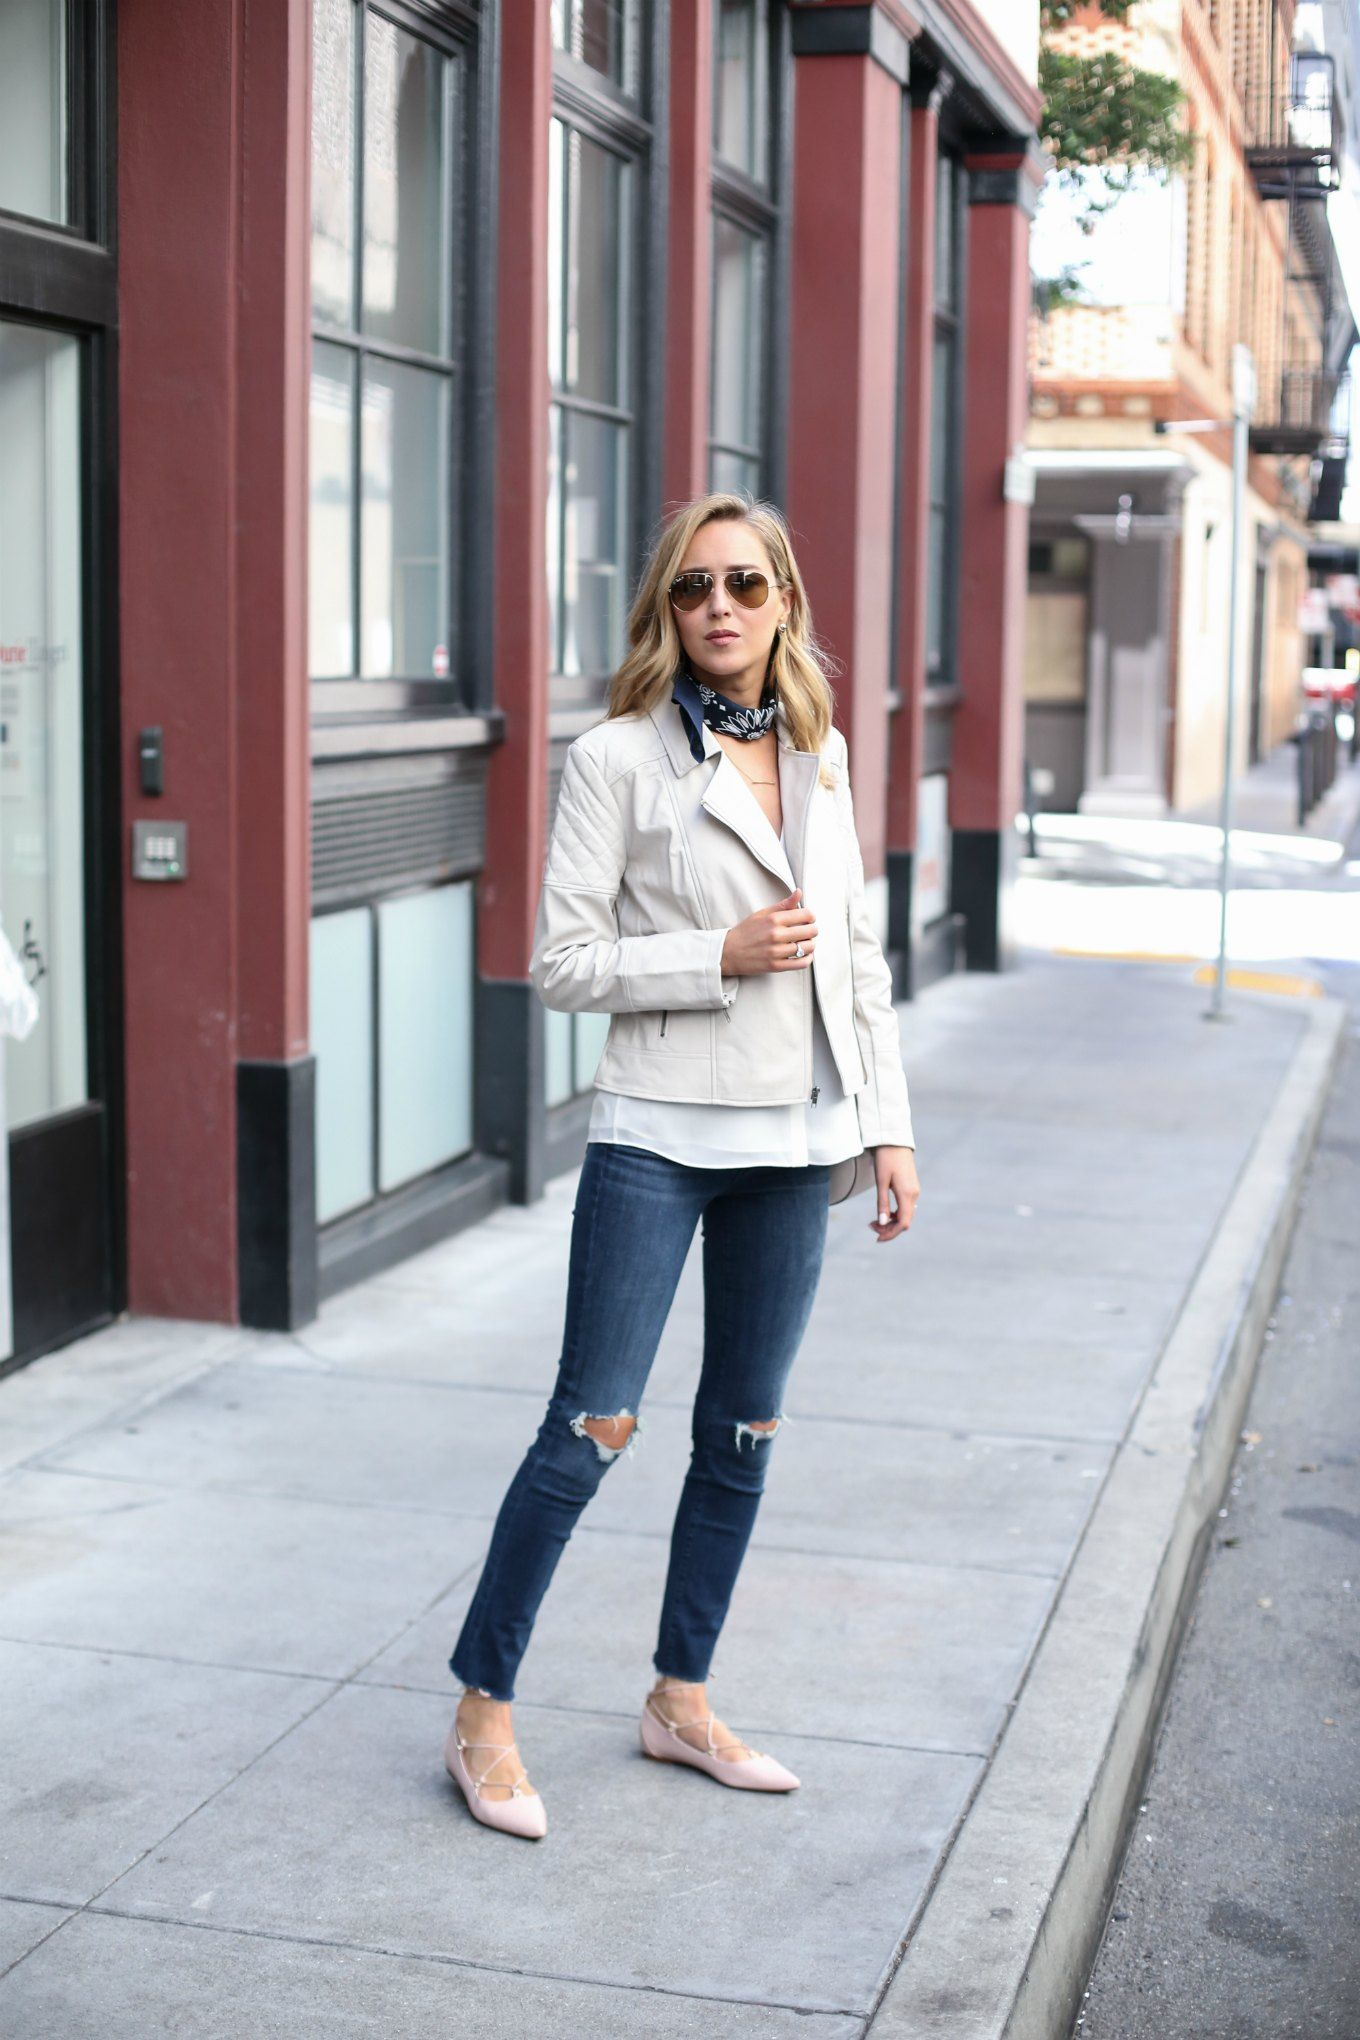 Ripped Jeans and Nude LaceUp Flats Outfit inspiration Pinterest